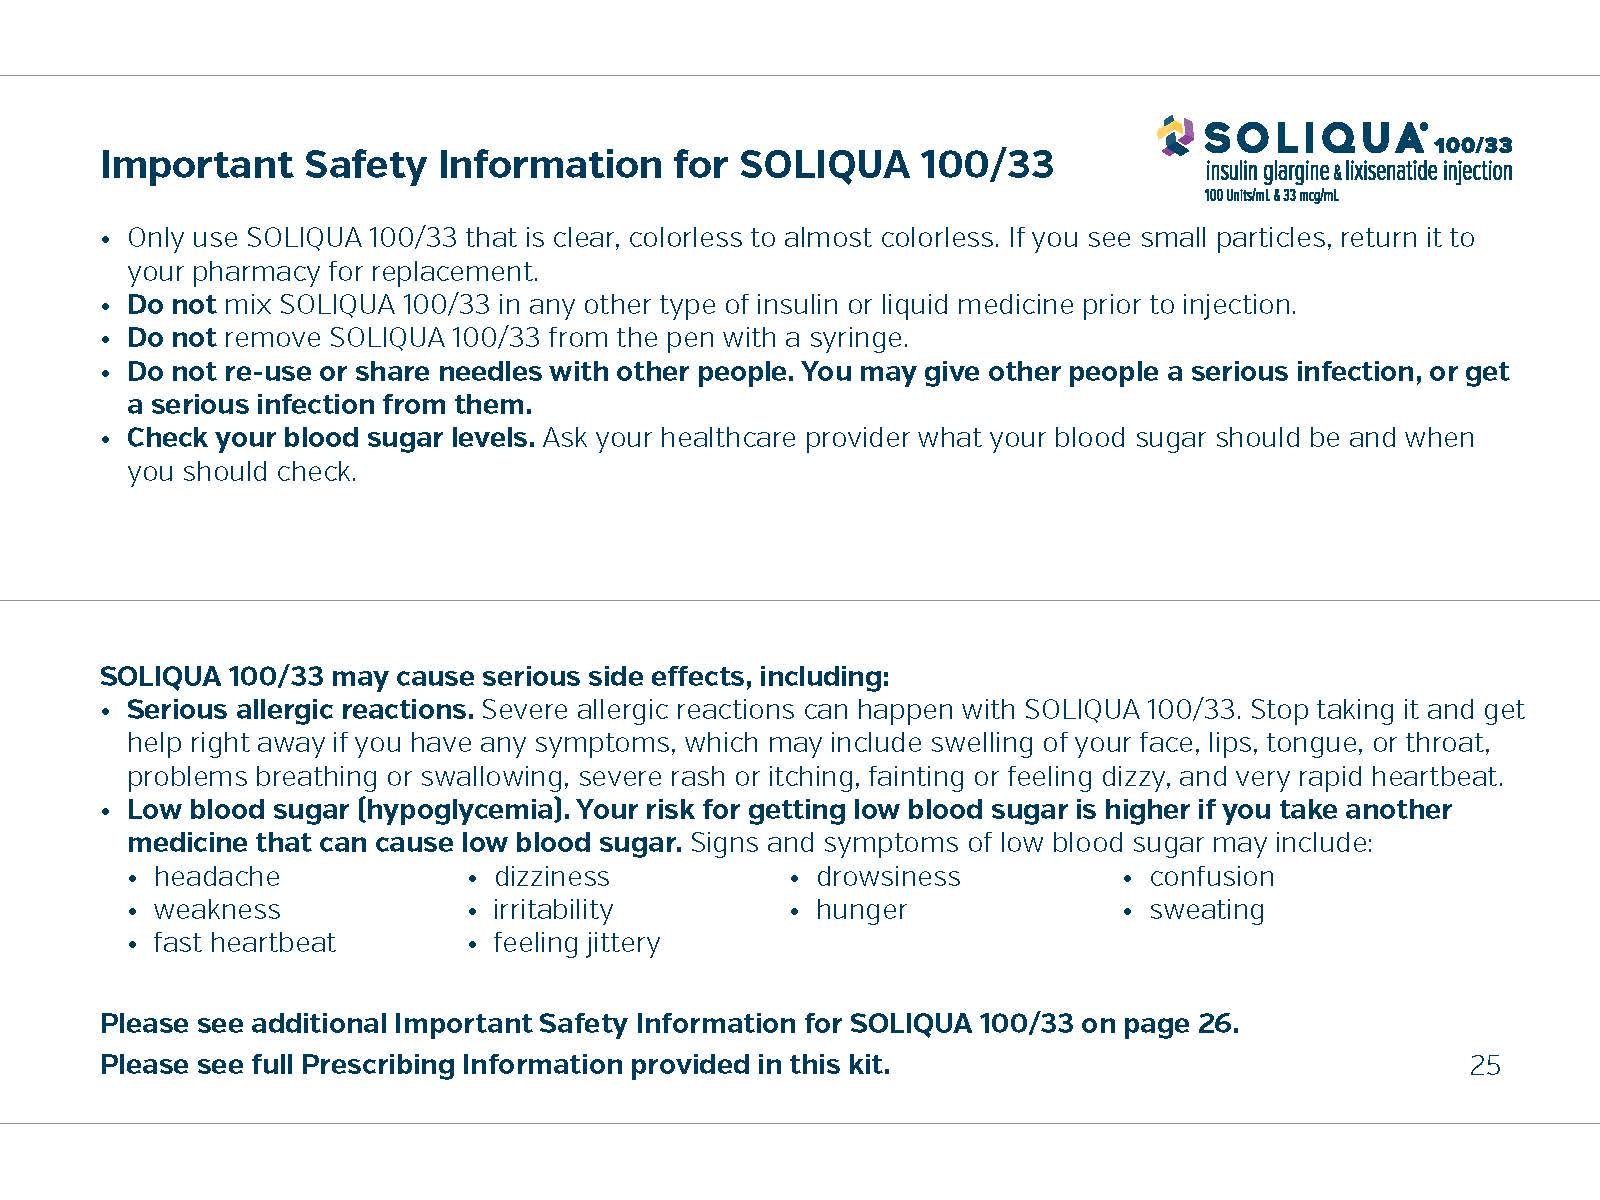 SAUS.SQA.17.04.1224_Starter_Kit_Core_Brochure_v24 copy 2_Page_25.jpg